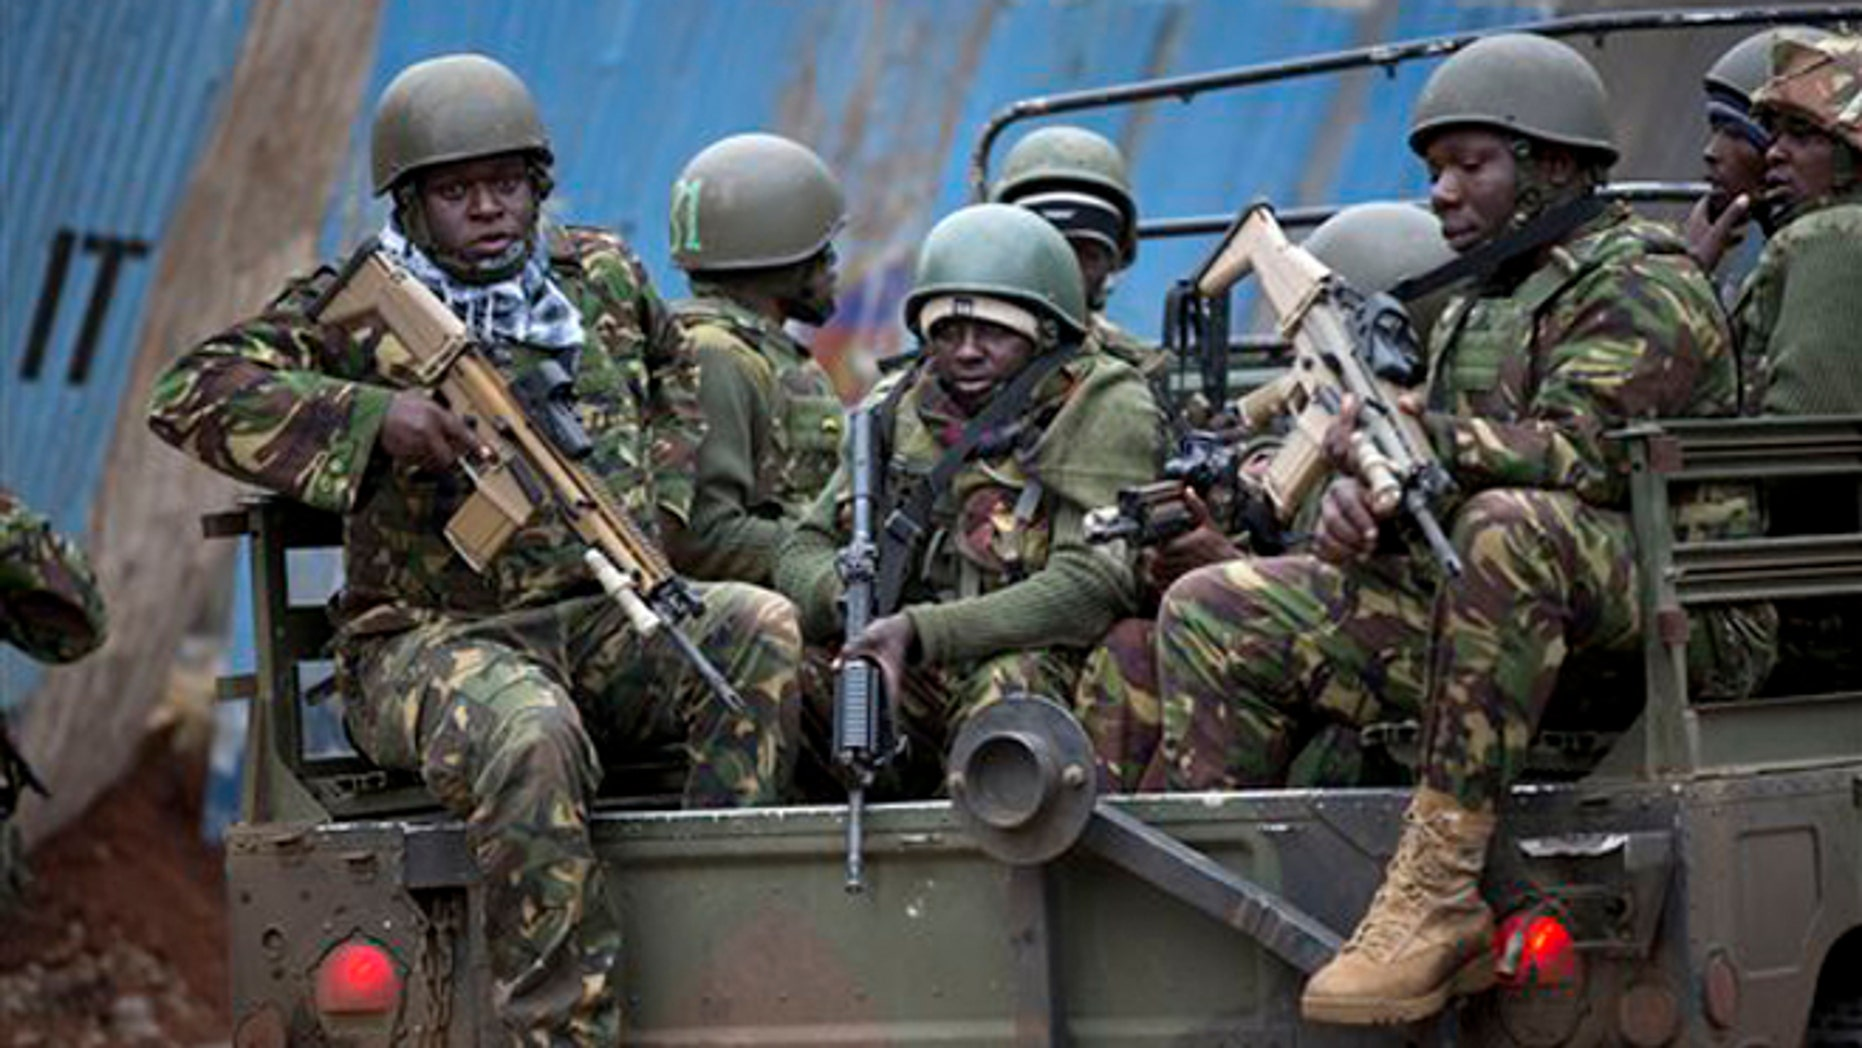 Trucks of soldiers from the Kenya Defense Forces arrive after dawn outside the Westgate Mall in Nairobi, Kenya Sunday, Sept. 22, 2013. Islamic extremist gunmen lobbed grenades and fired assault rifles inside Nairobi's top mall Saturday, killing dozens and wounding over a hundred in the attack. Early Sunday morning, 12 hours after the attack began, gunmen remained holed up inside the mall with an unknown number of hostages. (AP Photo/Ben Curtis)